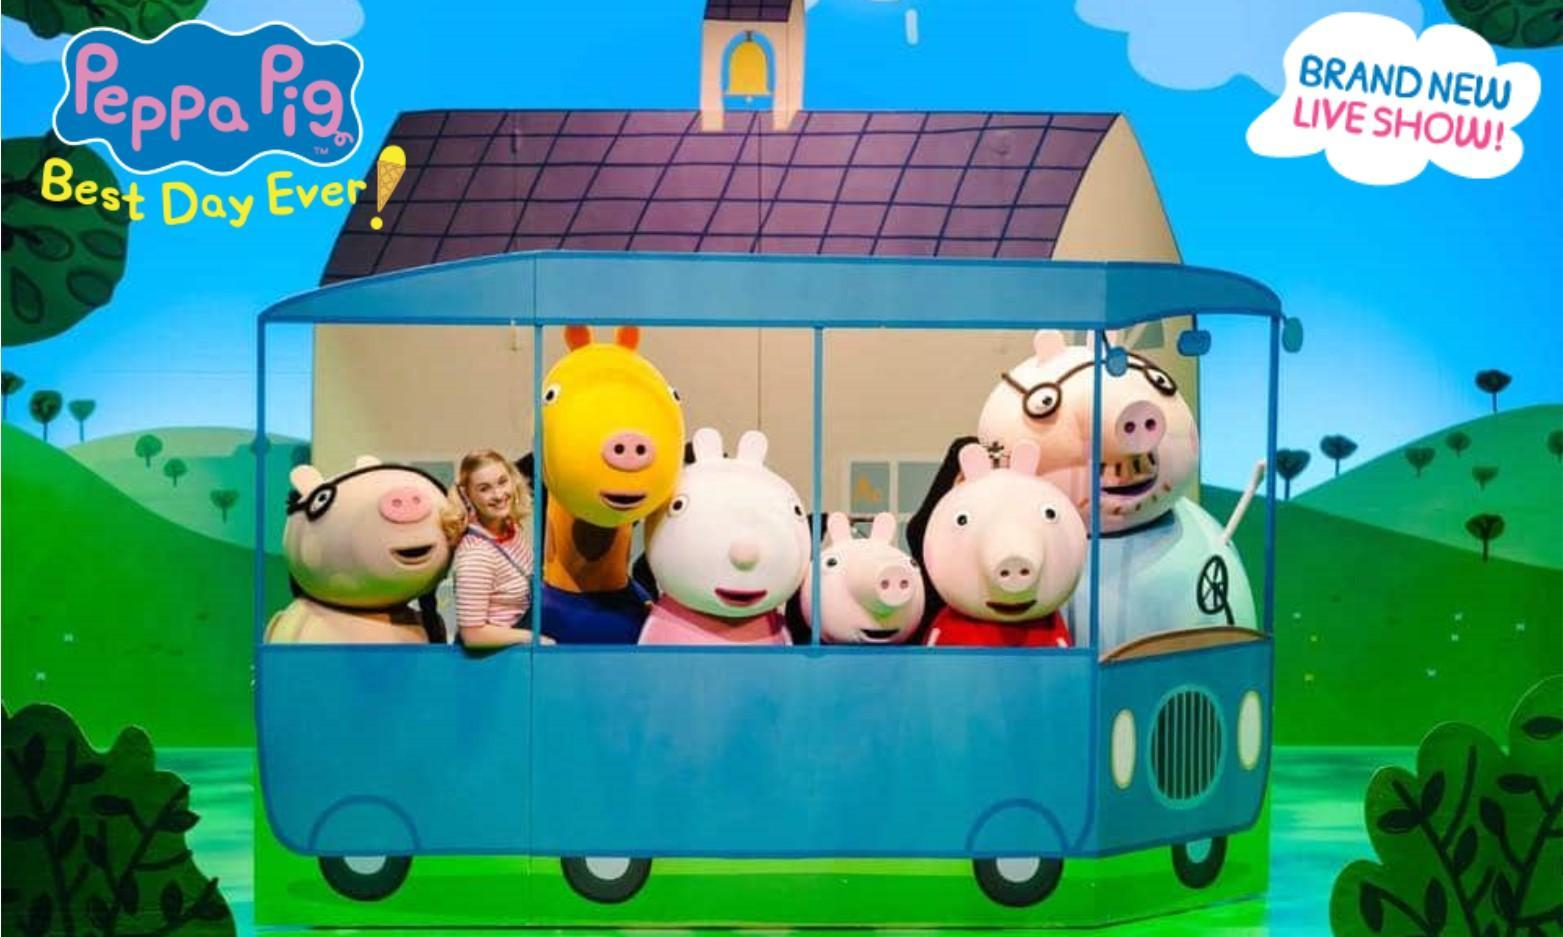 WHATS ON IN SWANSEA Peppa Pig Best Day Ever at Swansea Grand Theatre